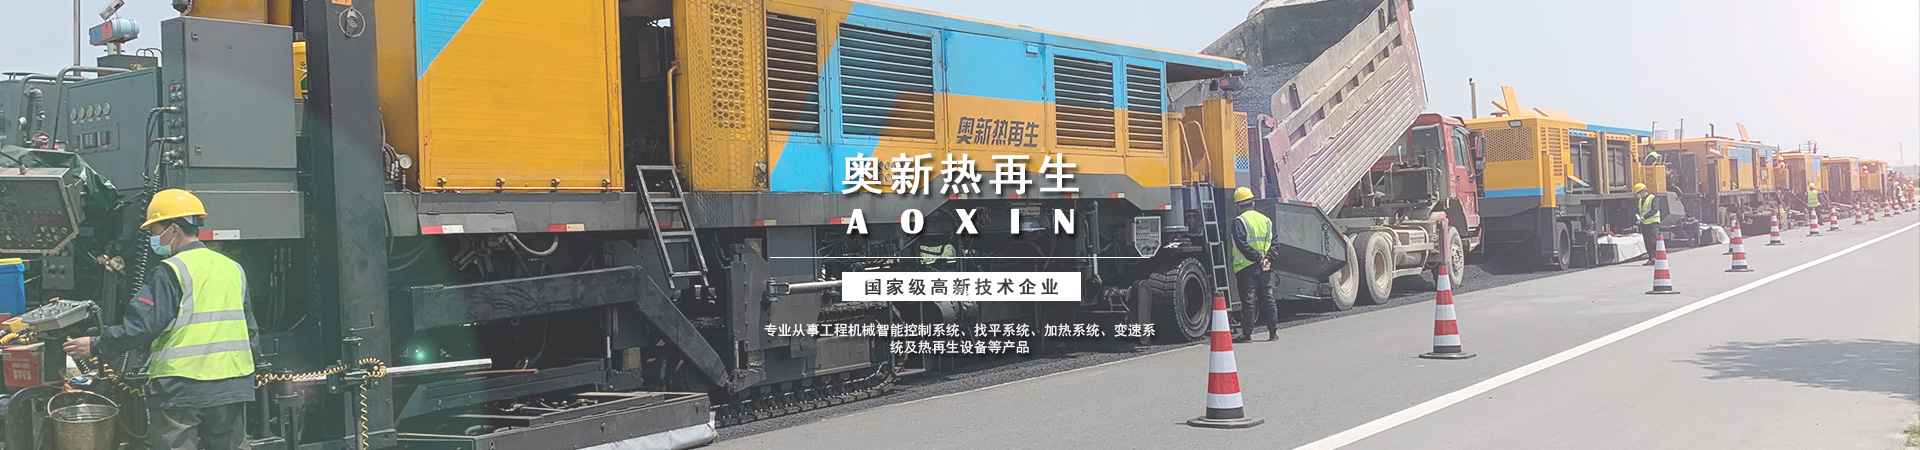 http://www.aoxinroad.com/data/upload/202004/20200424170819_276.jpg